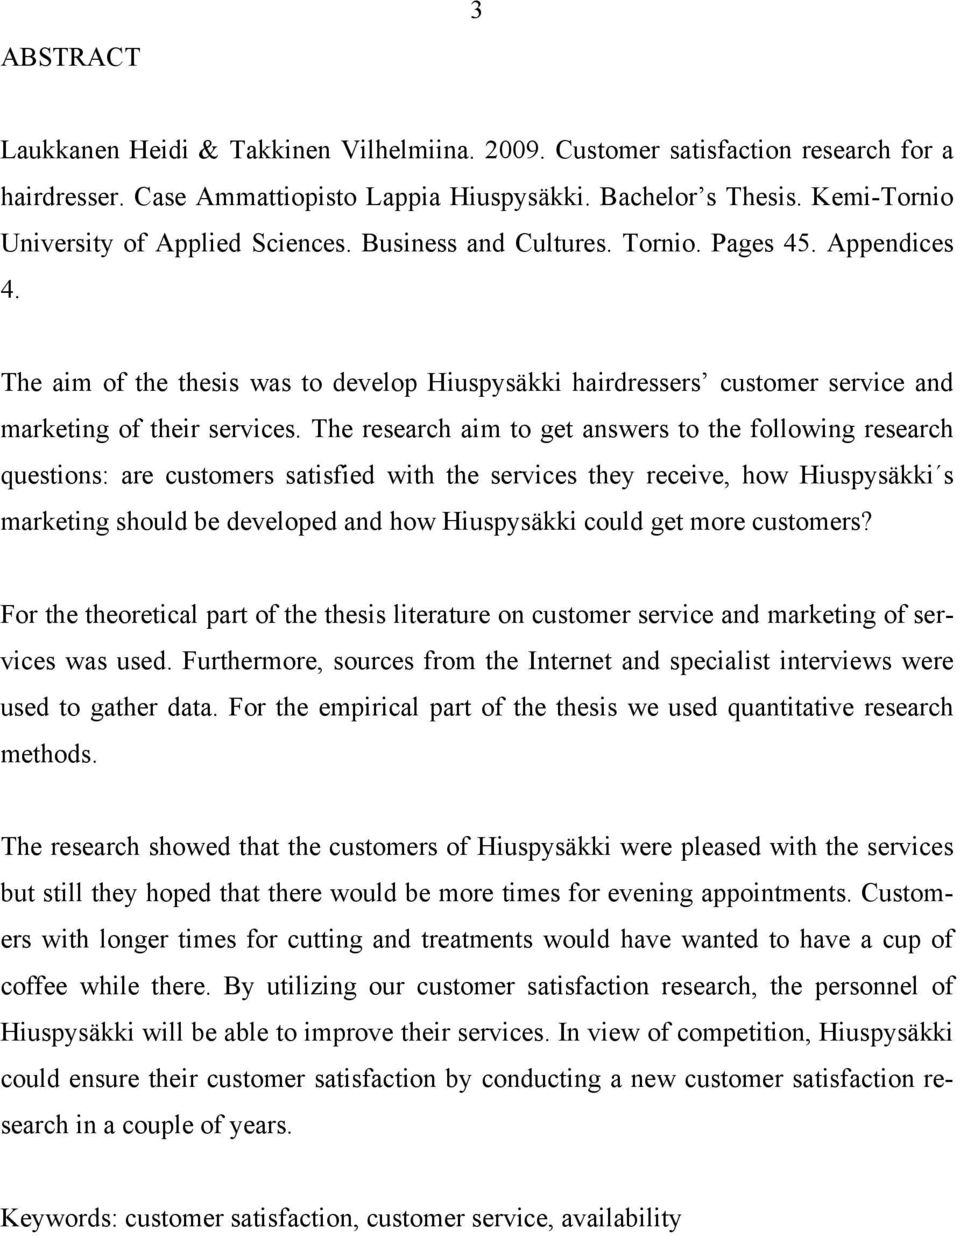 The aim of the thesis was to develop Hiuspysäkki hairdressers customer service and marketing of their services.